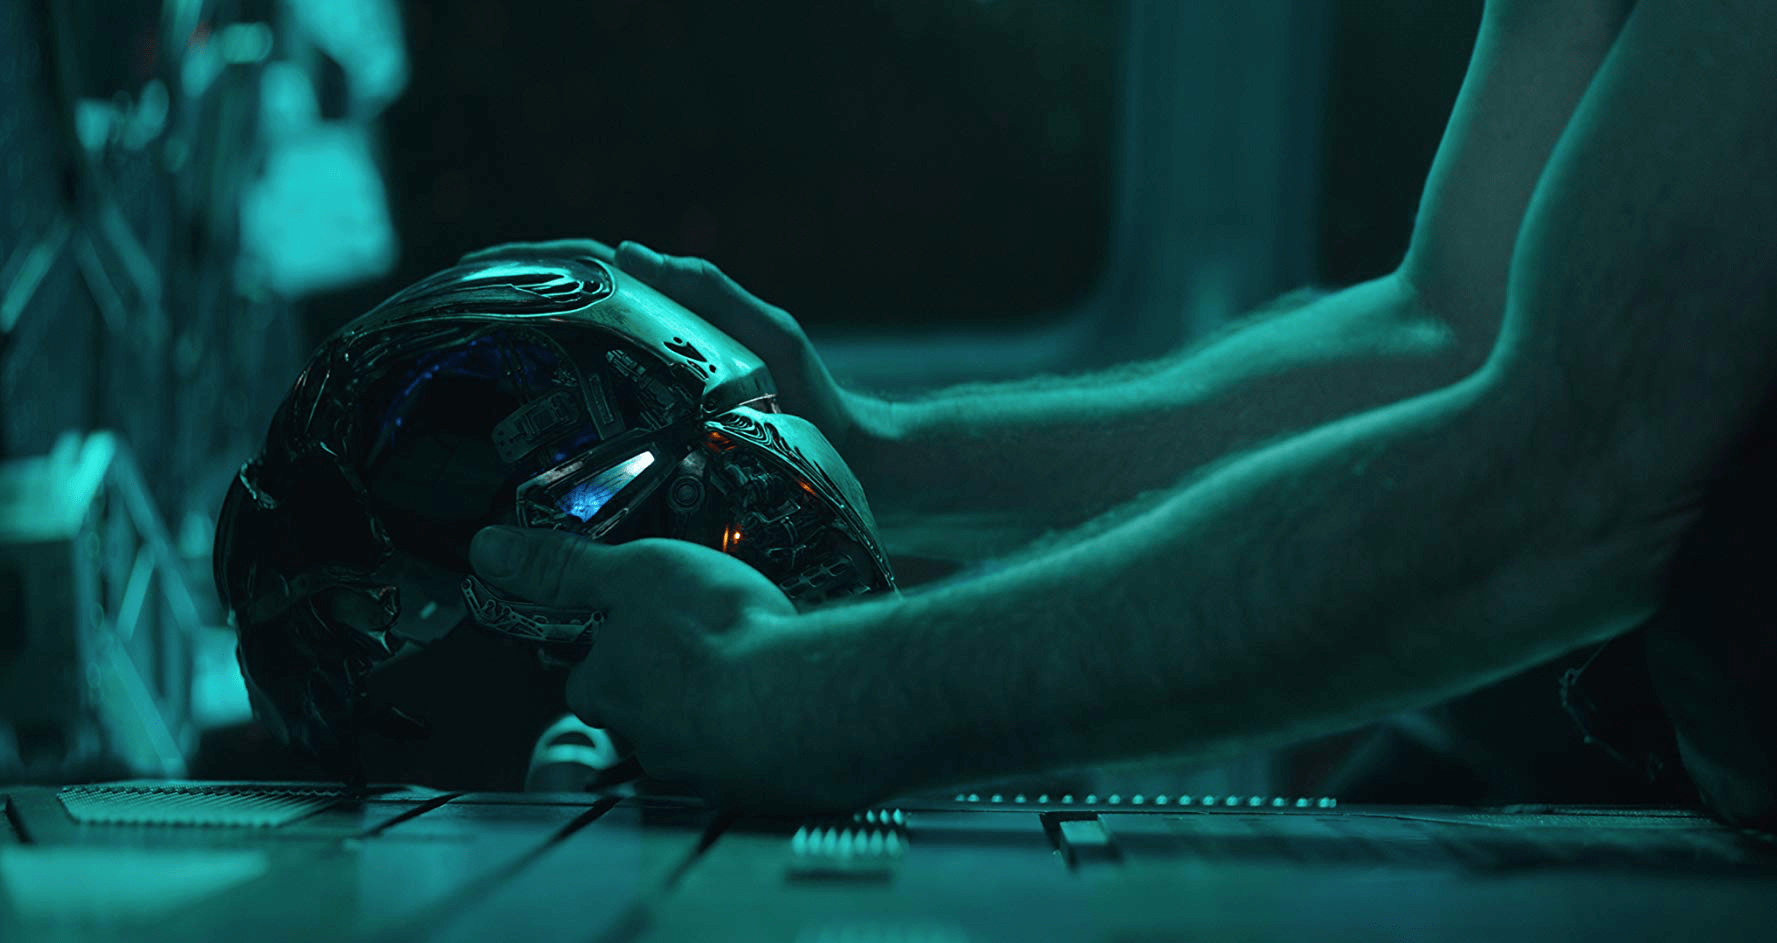 2) The Ironman helmet is being picked up by Tony Stark. The helmet is missing the left part of the face and the light of the eye is dimly lit.